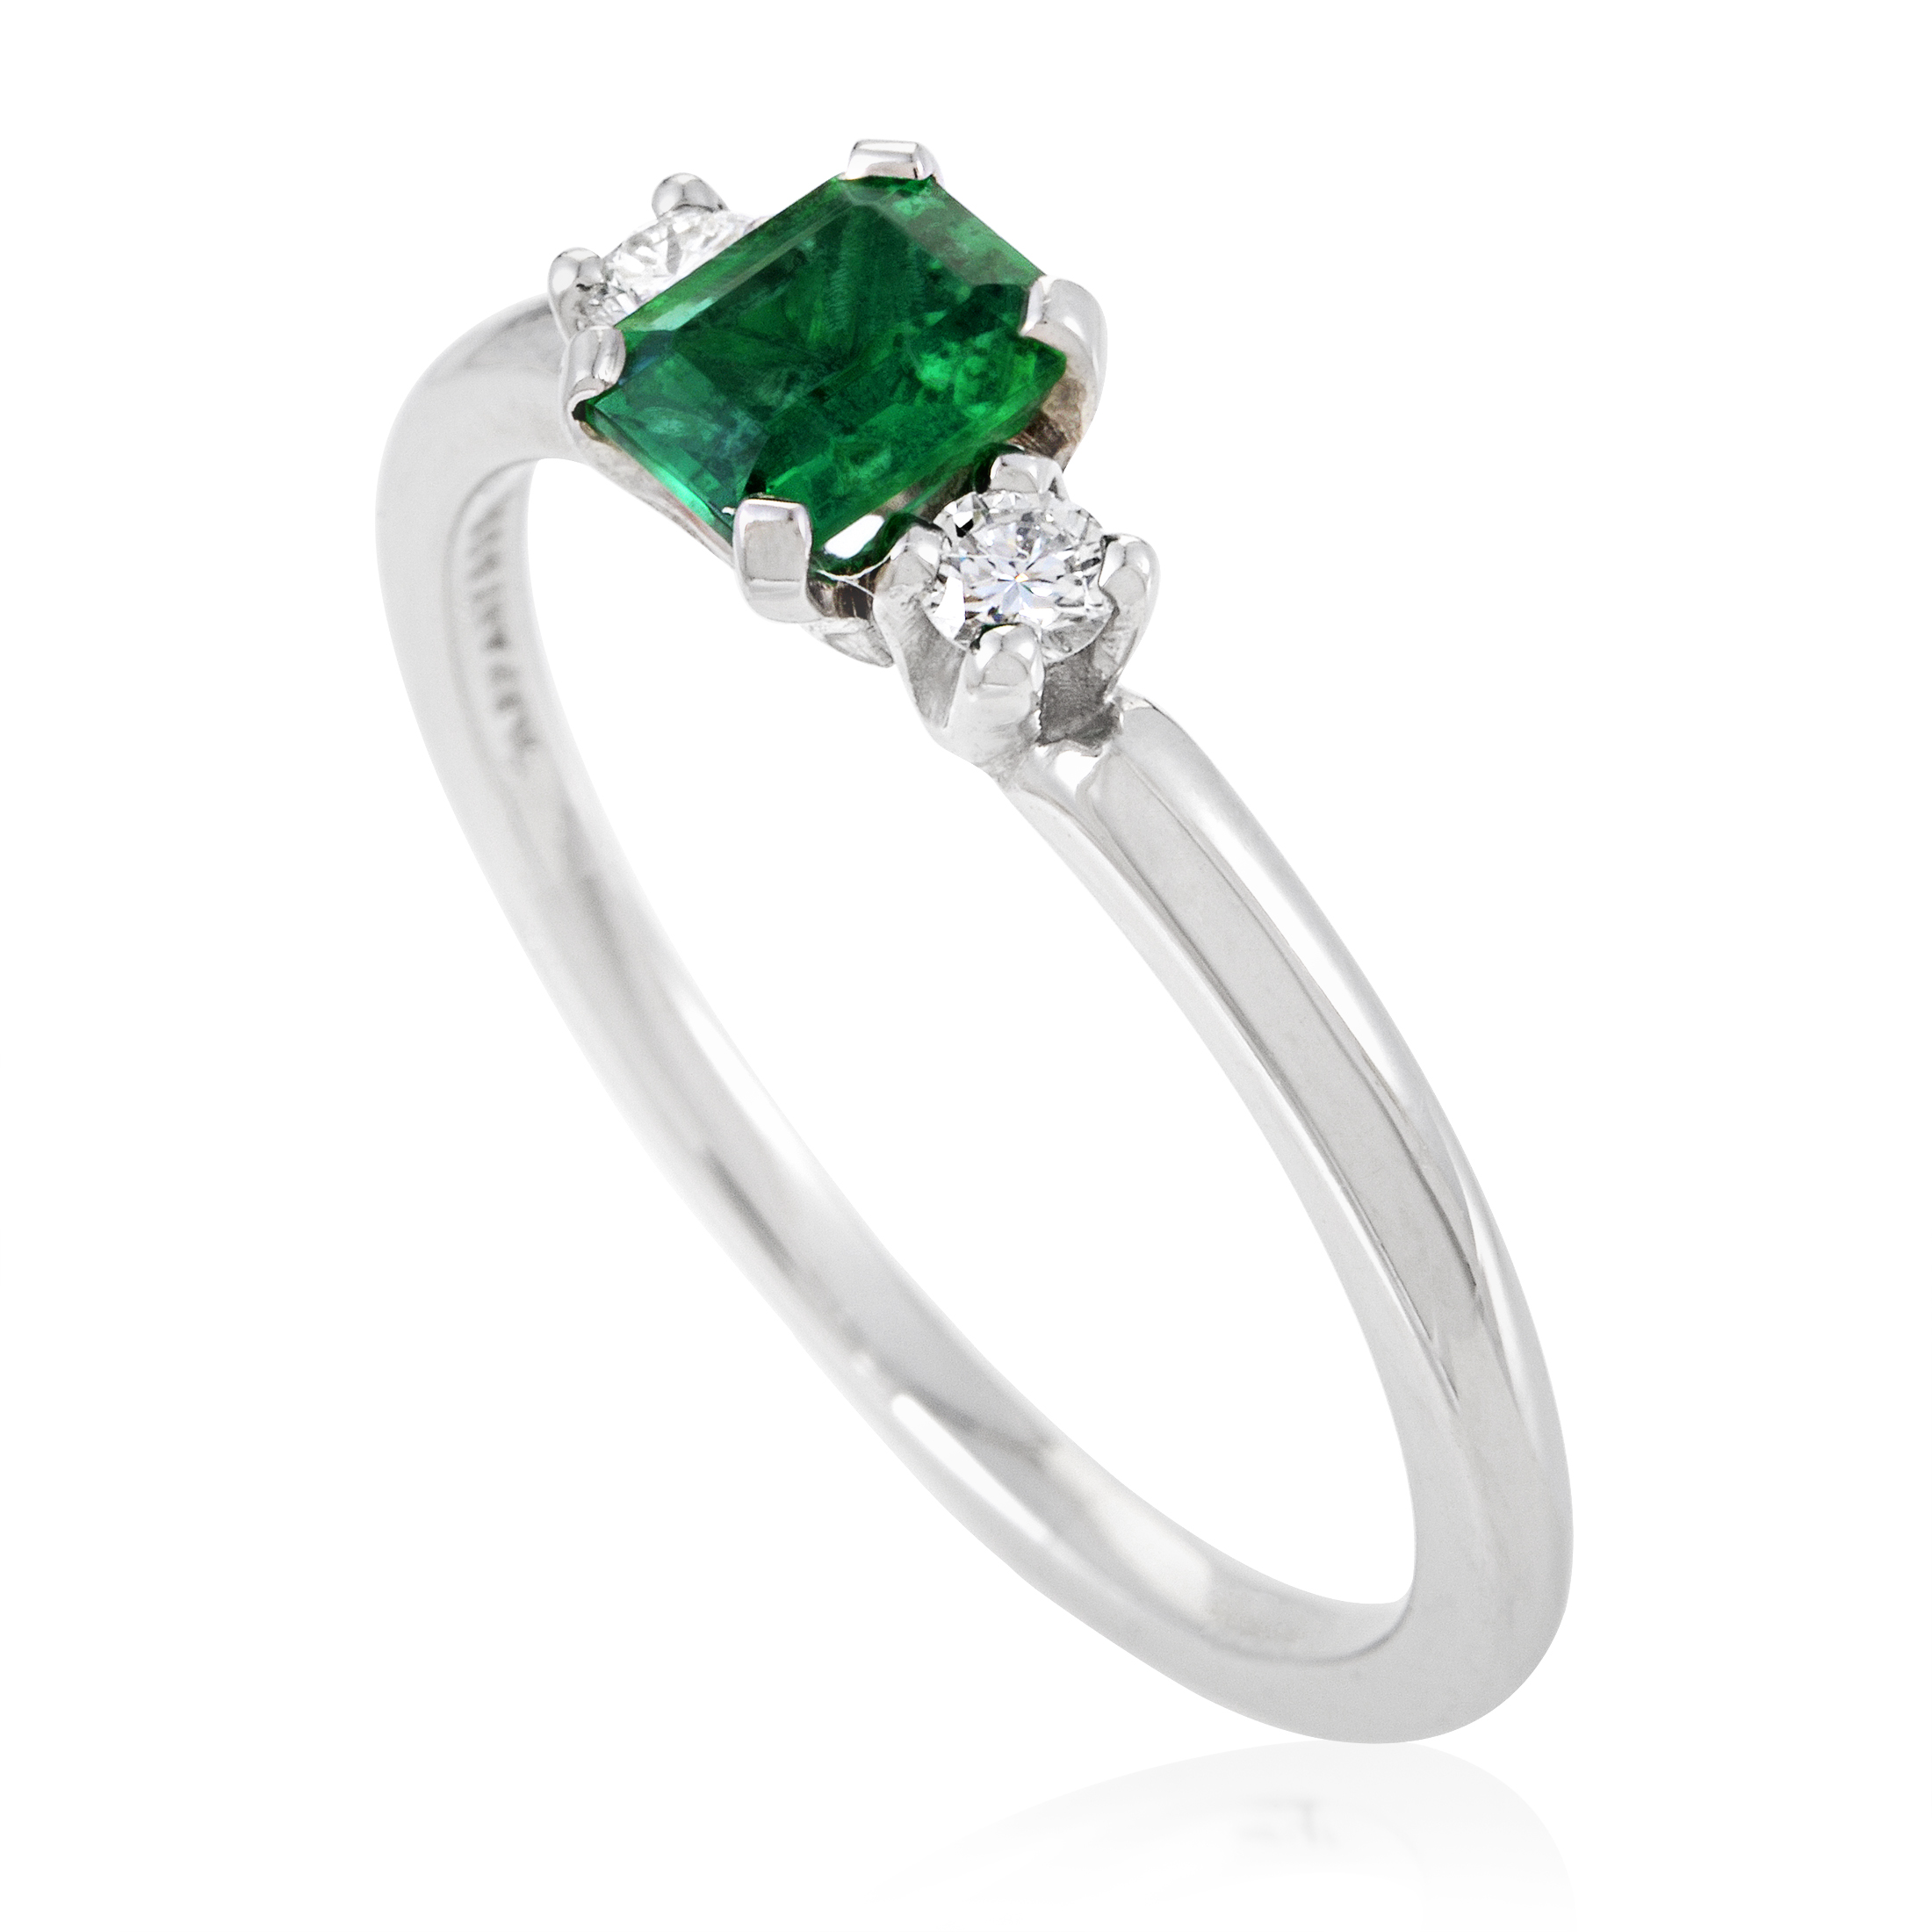 Tiffany & Co. Women's Platinum Diamond & Emerald Ring